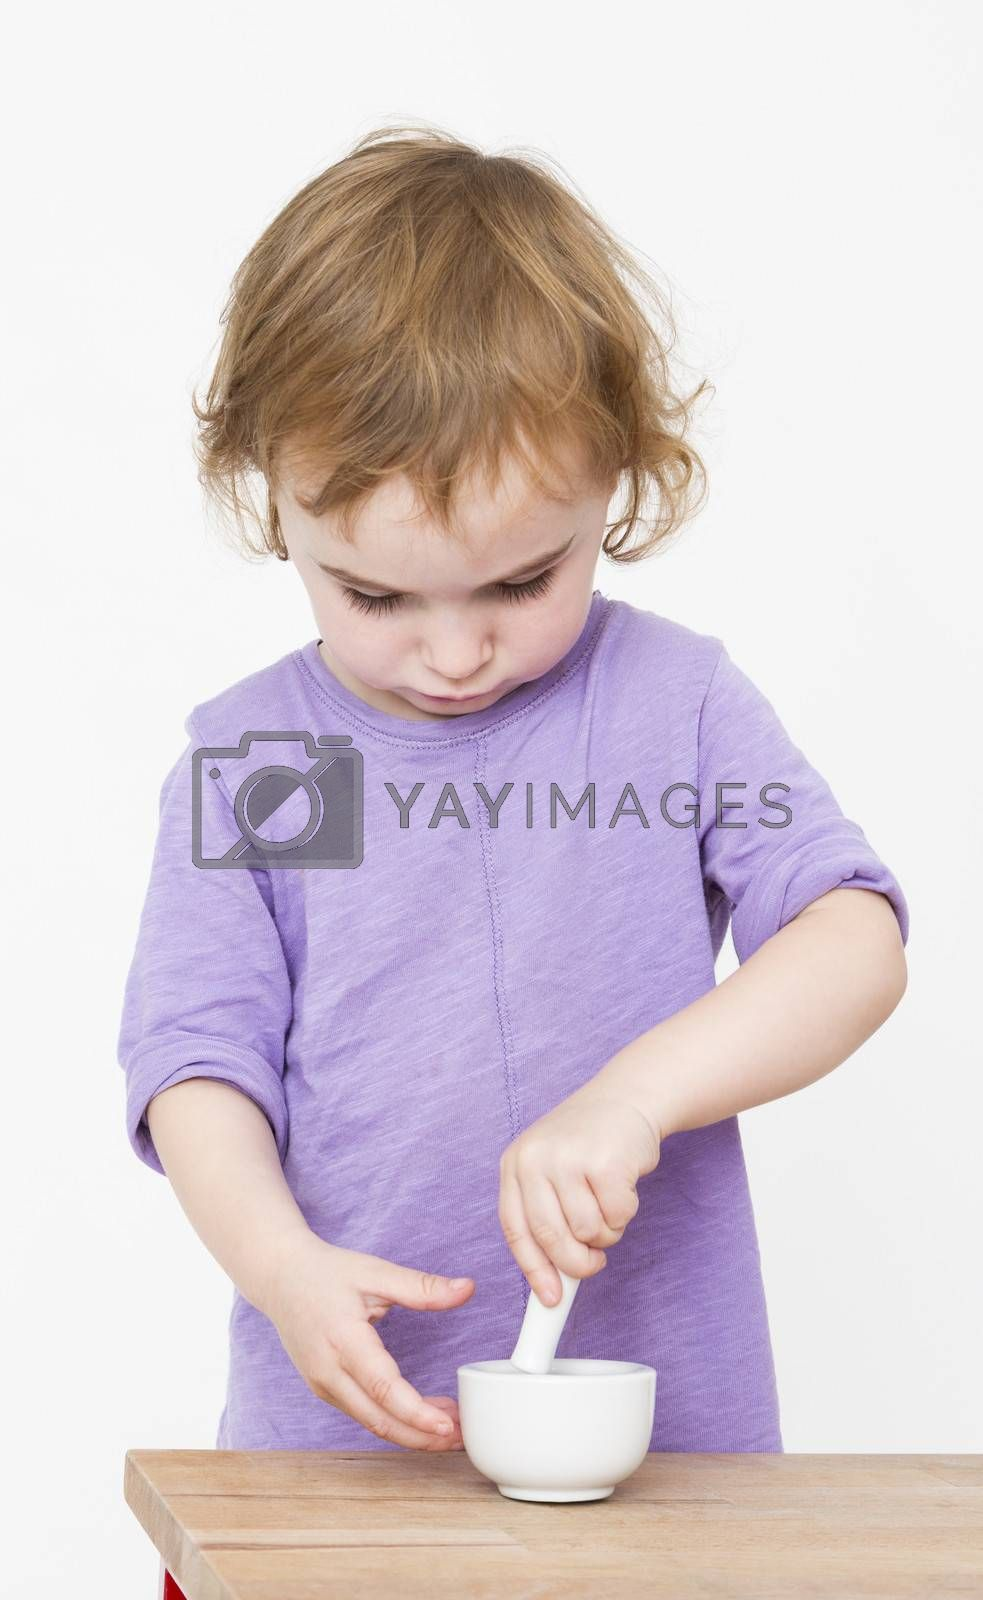 child working with mortar. neutral grey background